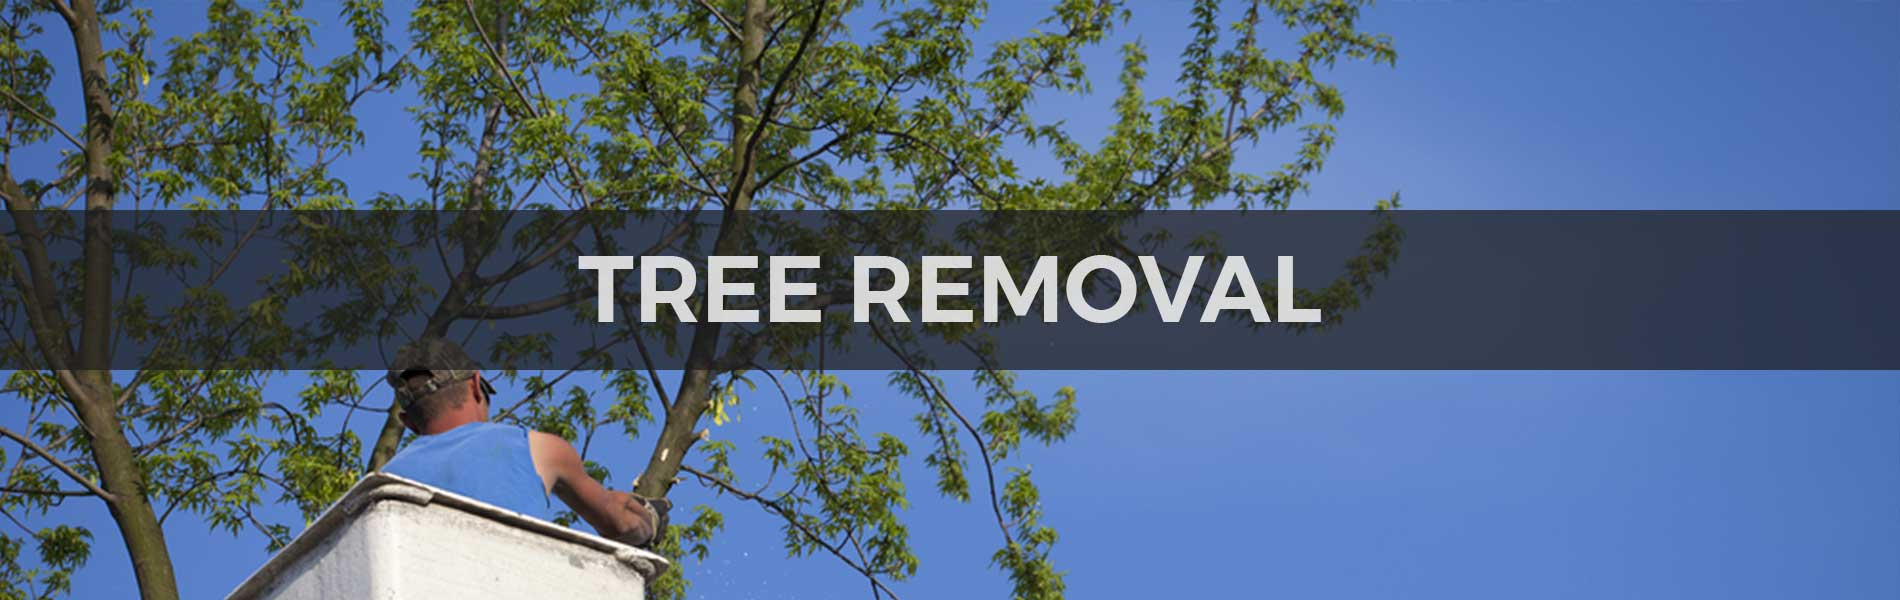 What are reasons for hiring professionals for Tree Stump Removal Service?